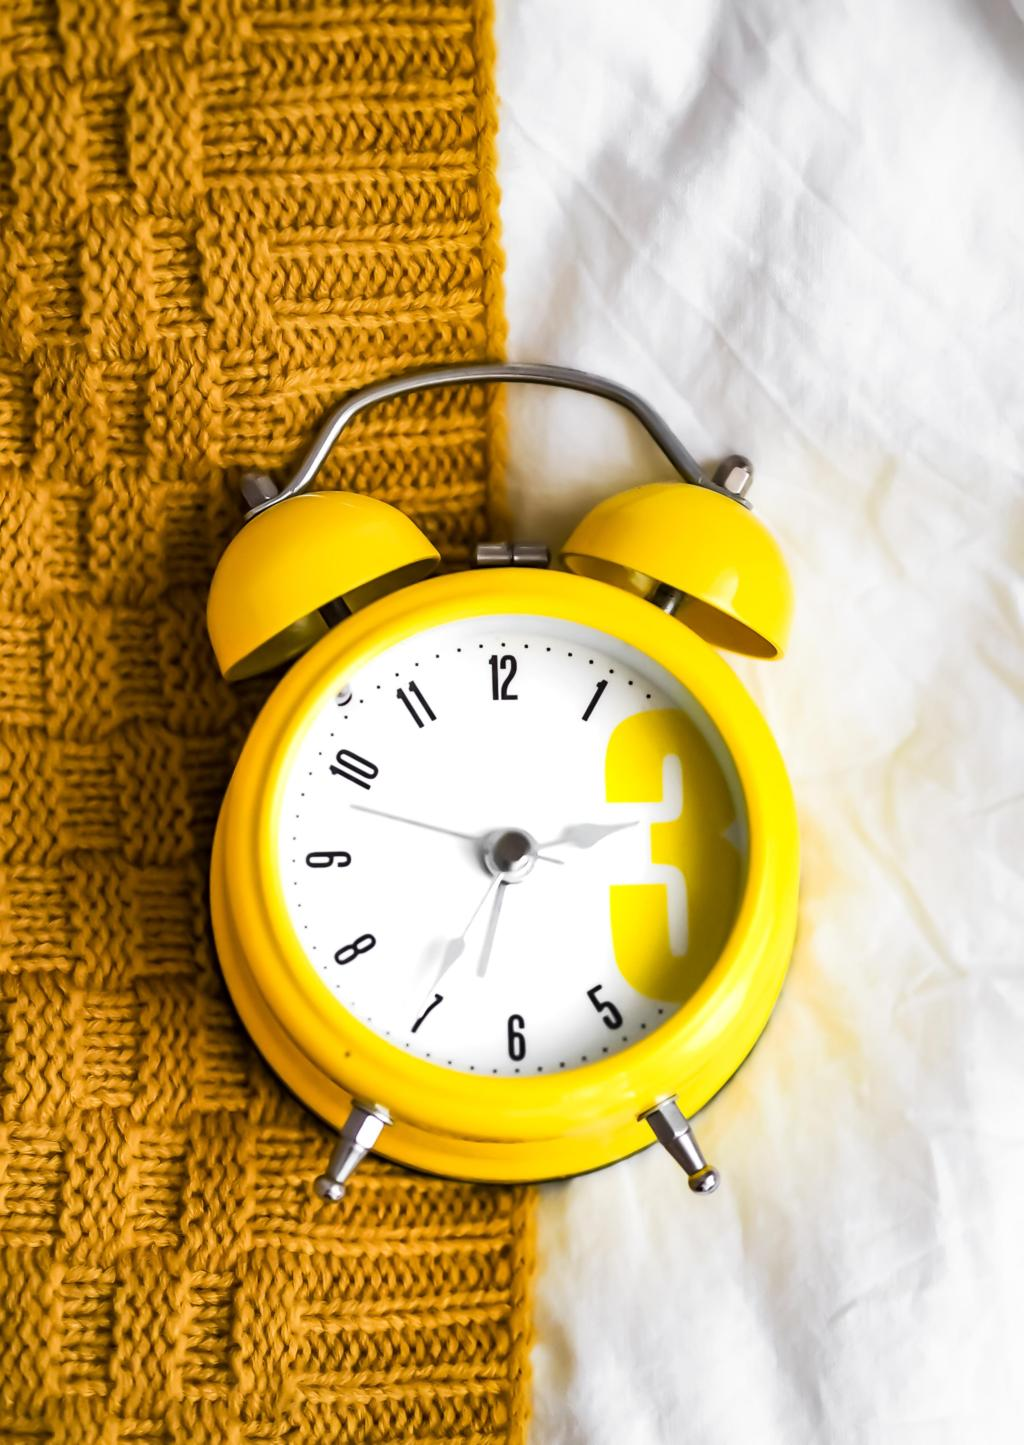 Does Your Morning Wake Up Routine Dictate Your Alertness?